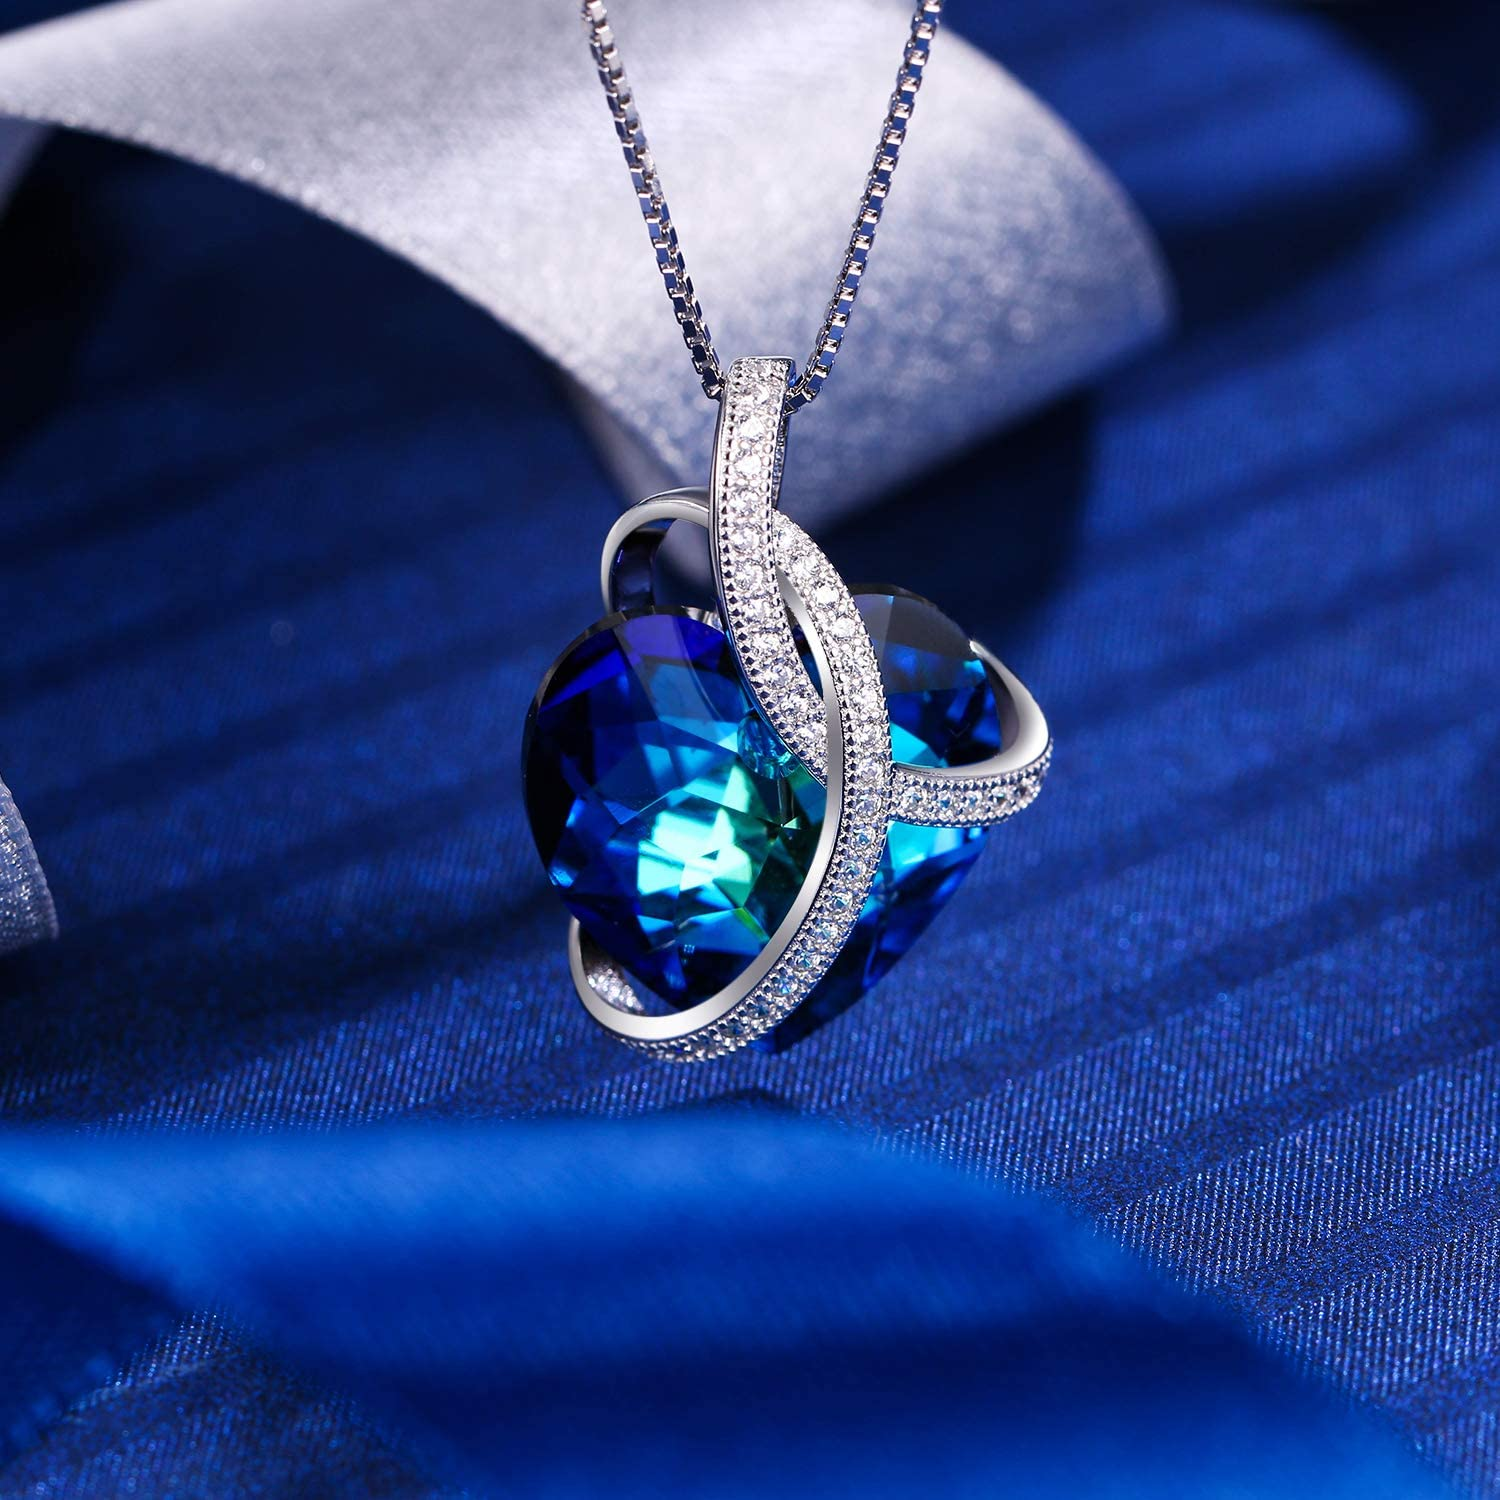 B01MFFQP0I EleQueen Swarovski Crystals Heart Pendant Necklace-925 Sterling Silver-Cubic Zirconia Necklace-Gifts for Women, Box Chain 19\'\' 81Iw5o0X22BL